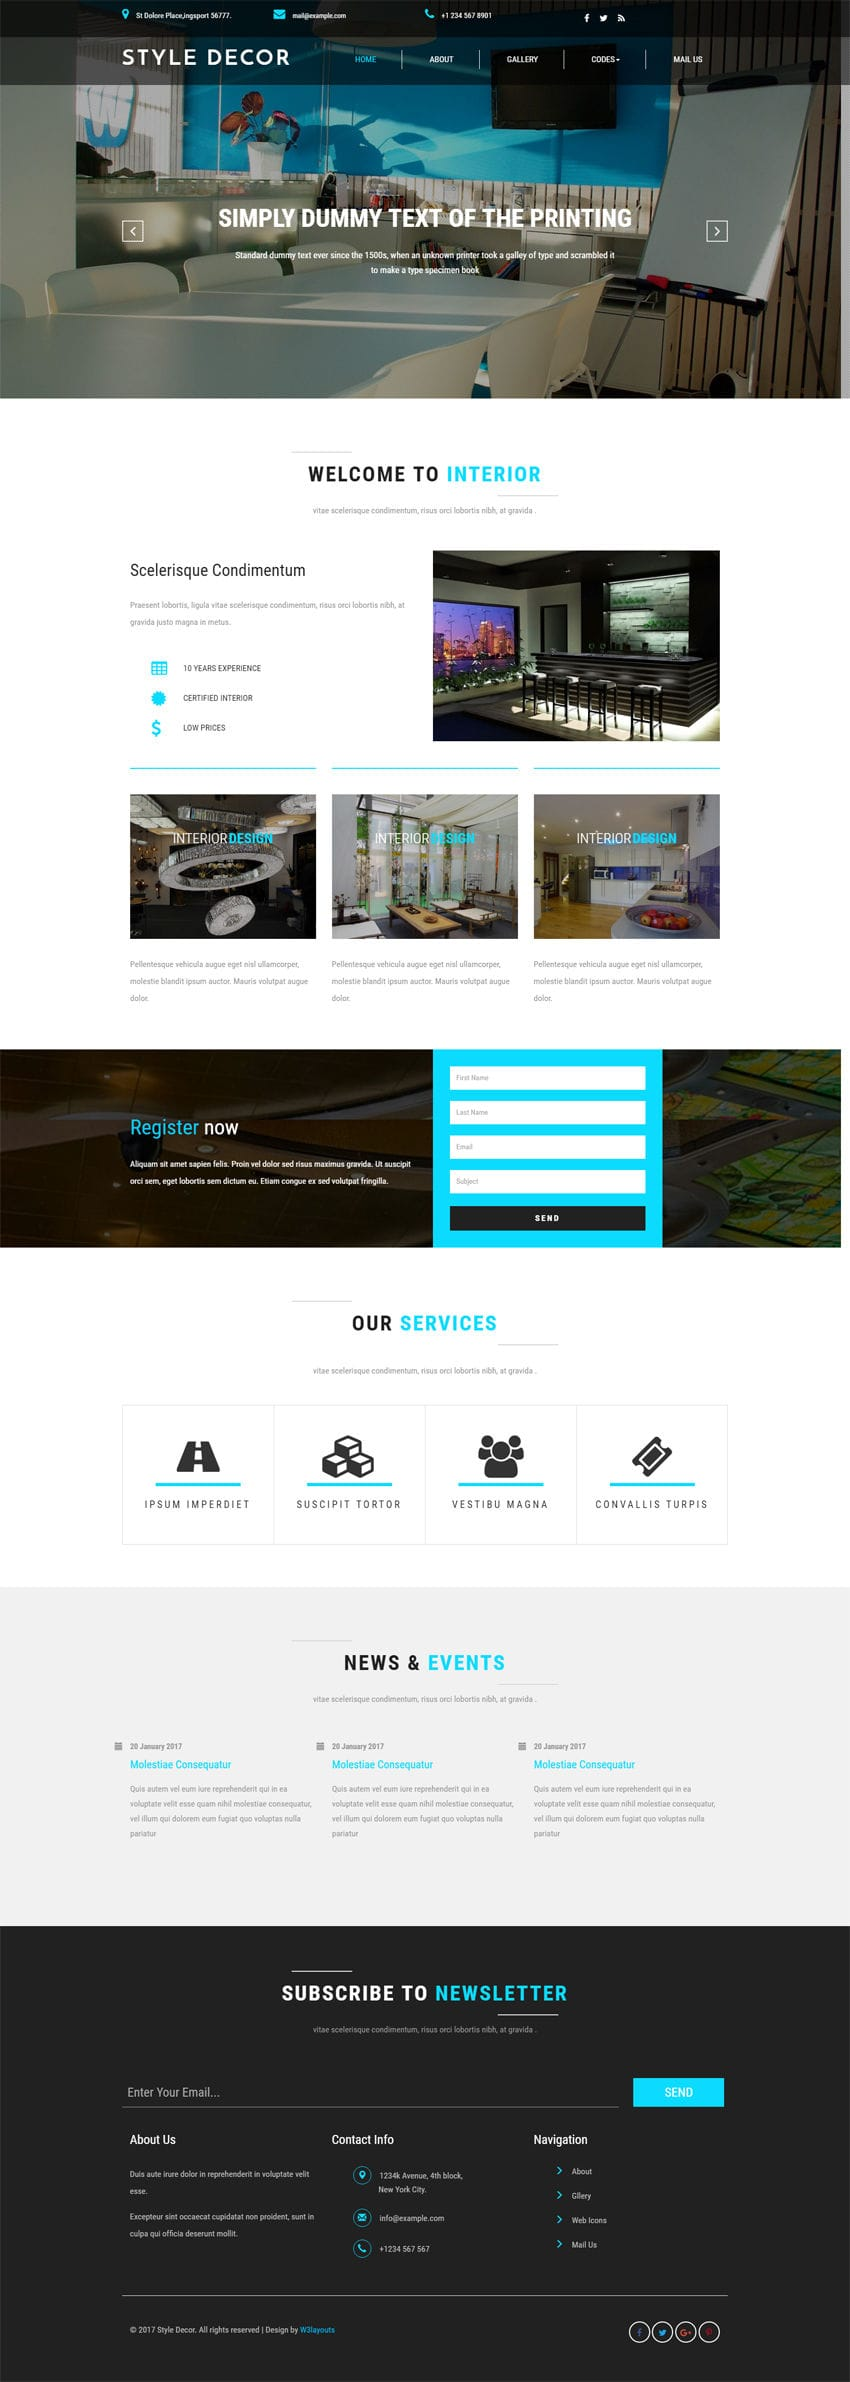 Style decor an interior category bootstrap responsive web for Interior design responsive website templates edge free download